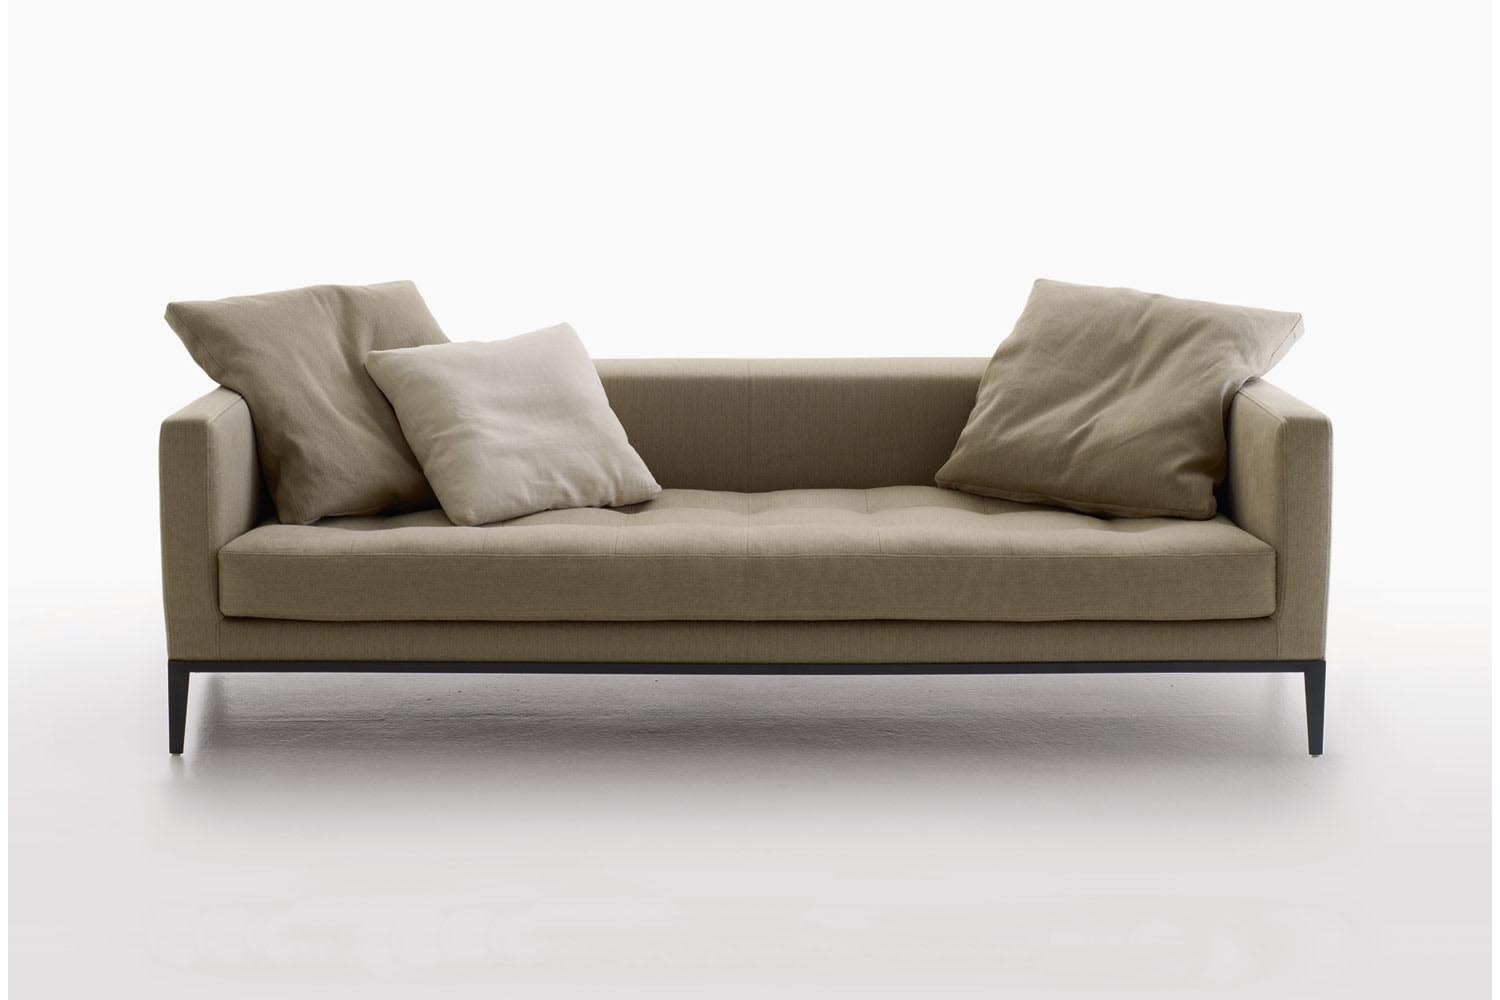 Simpliciter Sofa by Antonio Citterio for Maxalto